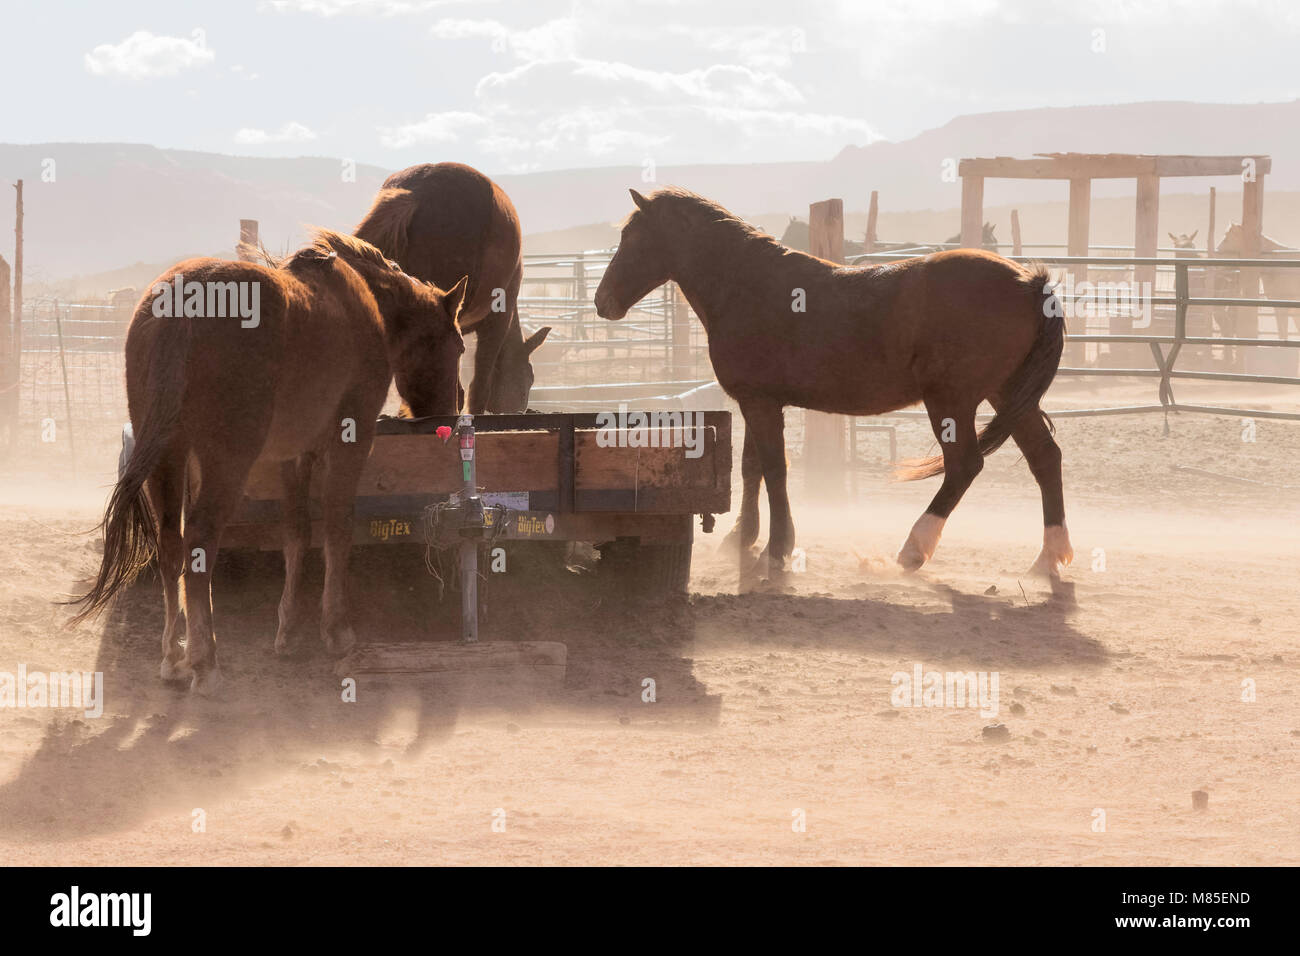 Horses on the Navajo Reservation, Monument Valley Tribal Park, Arizona - Stock Image